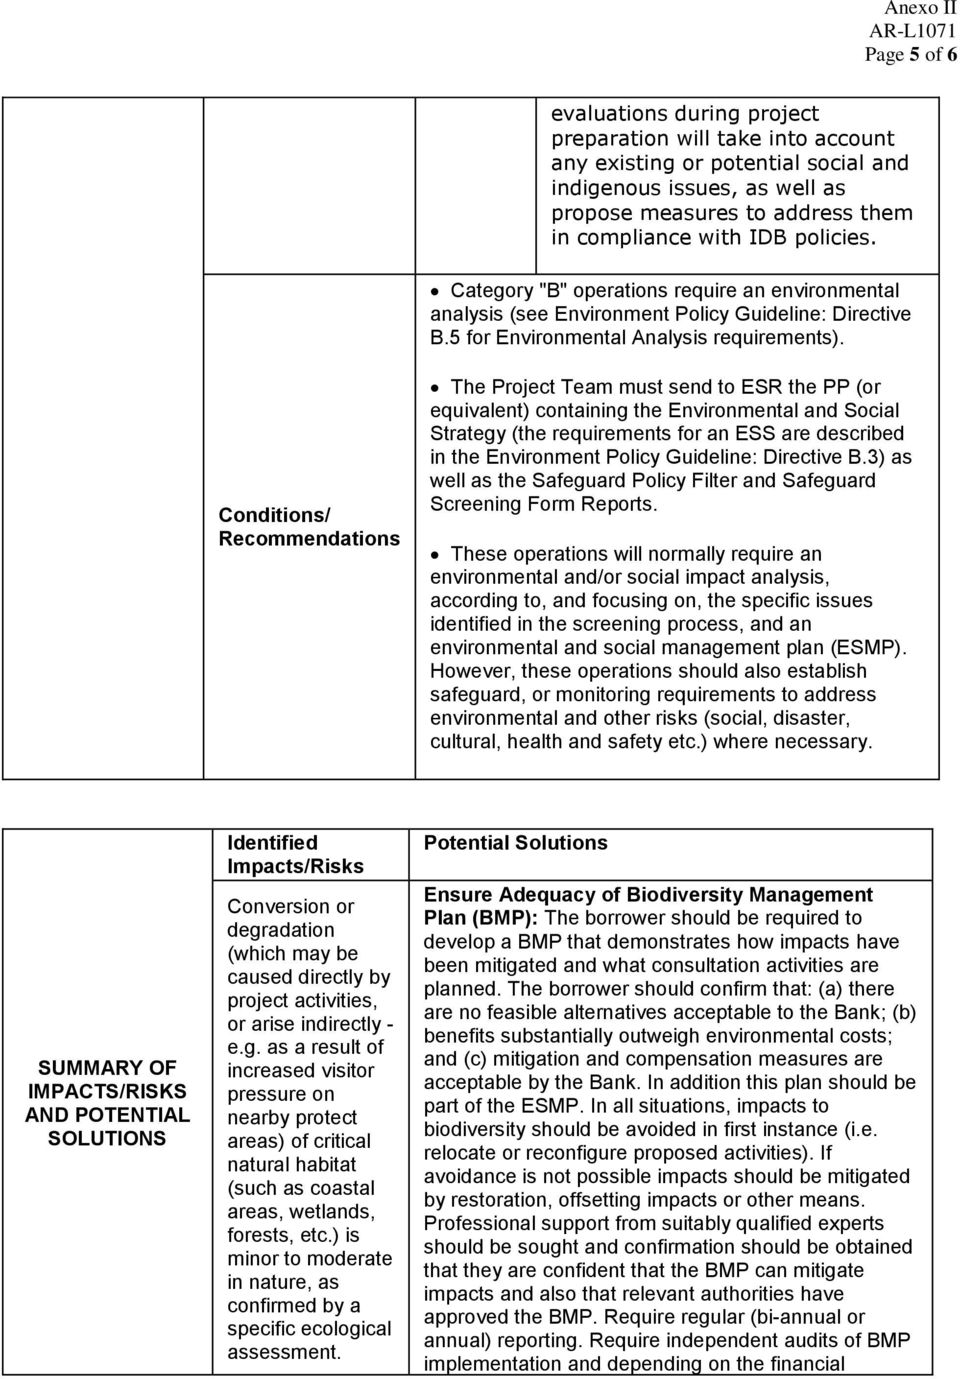 Conditions/ Recommendations The Project Team must send to ESR the PP (or equivalent) containing the Environmental and Social Strategy (the requirements for an ESS are described in the Environment